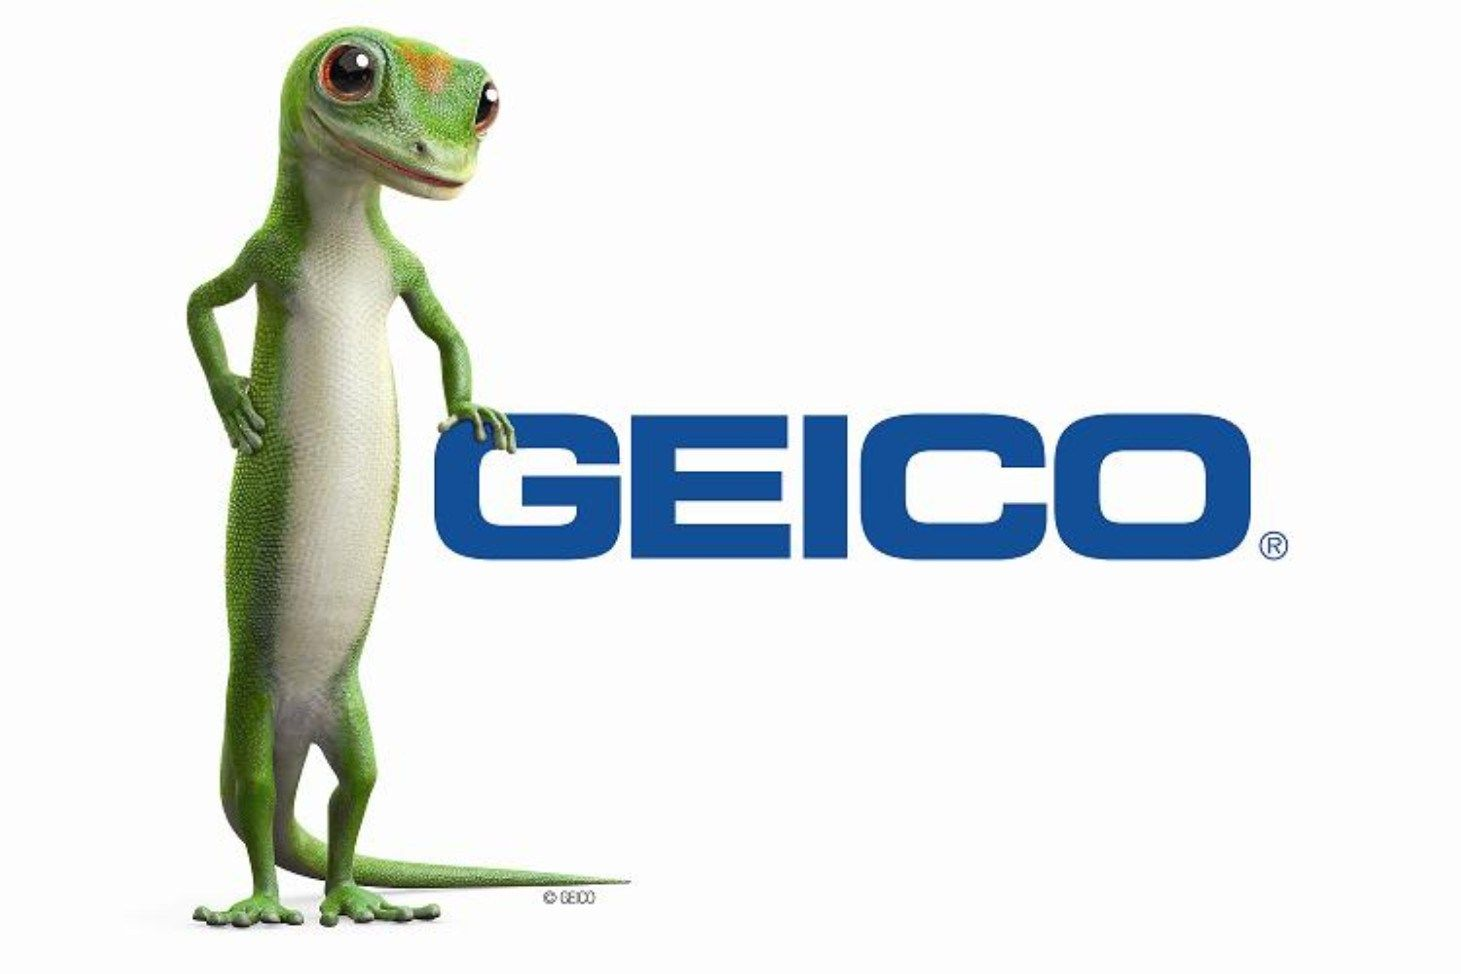 Geico Quotes Geico Car Insurance Coverage And Online Claims  Quotedg  Blaze .